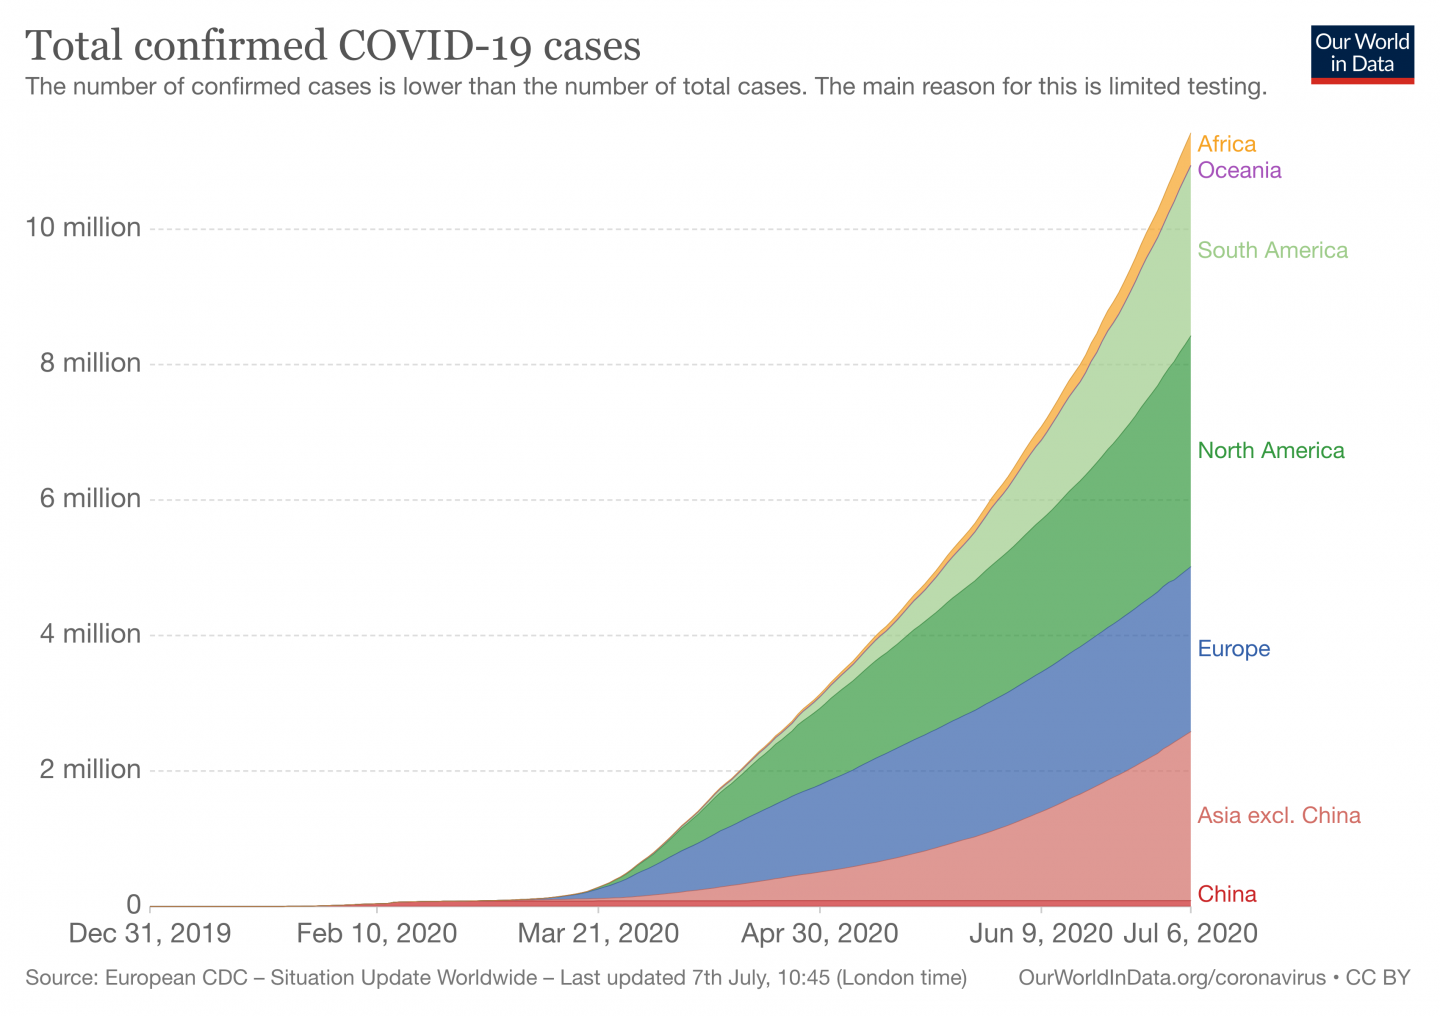 Chart of total confirmed COVID-19 cases (cumulative)